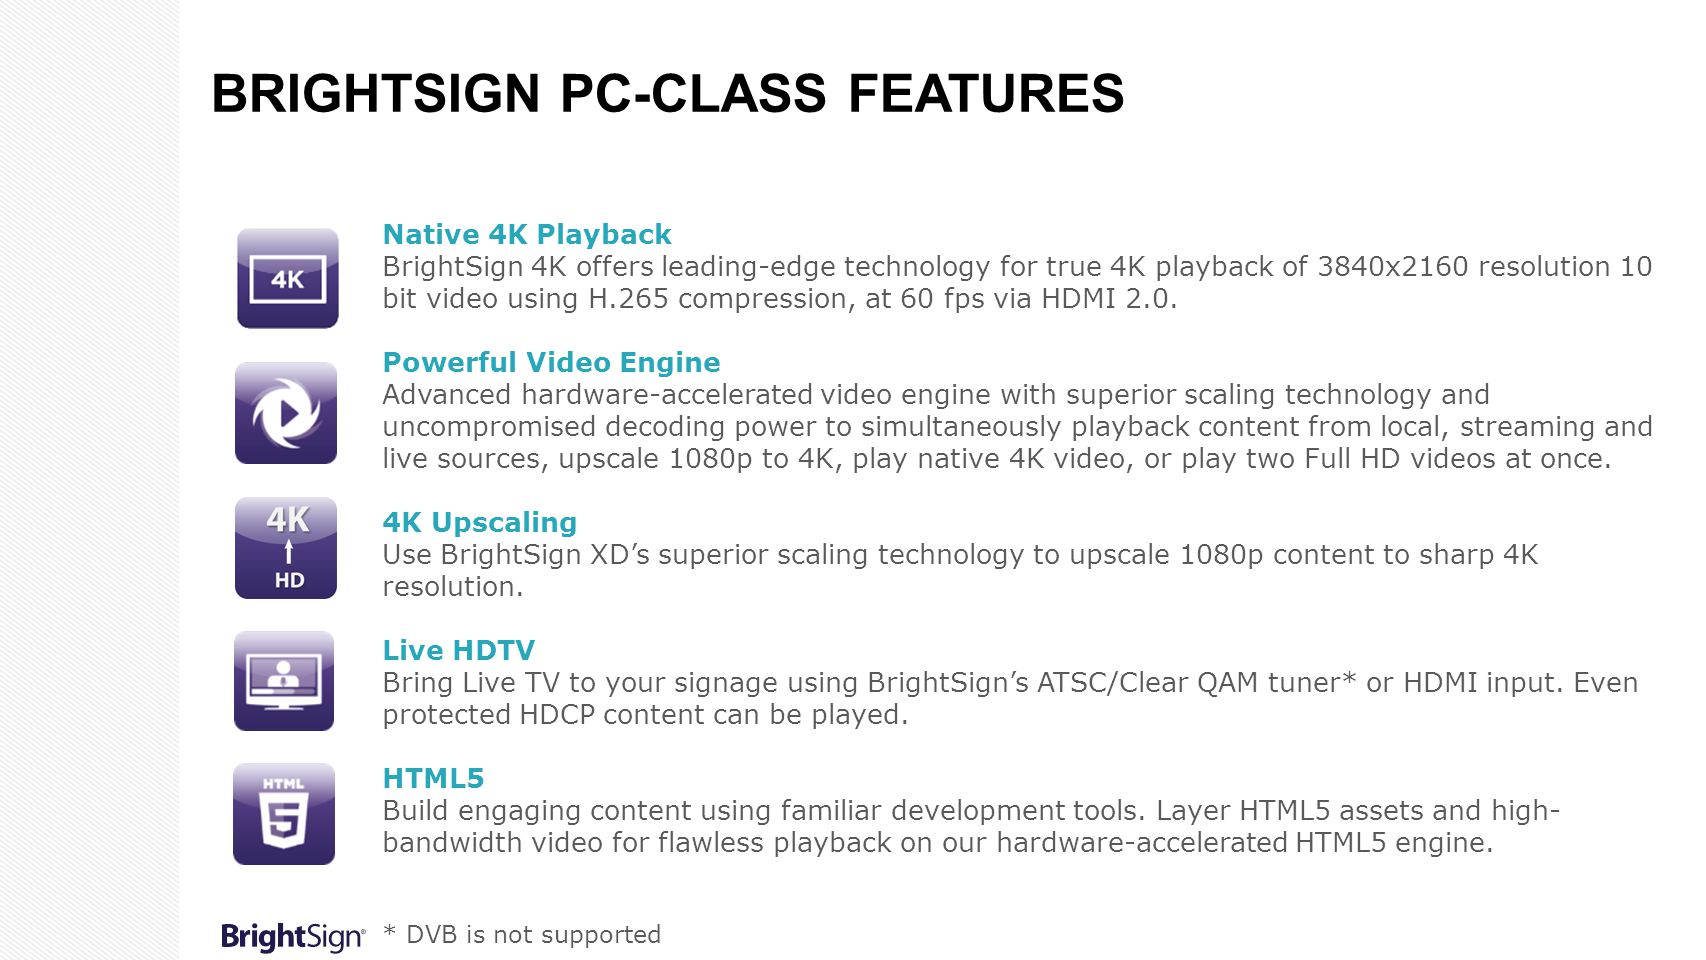 BrightSign PC-CLASS Features